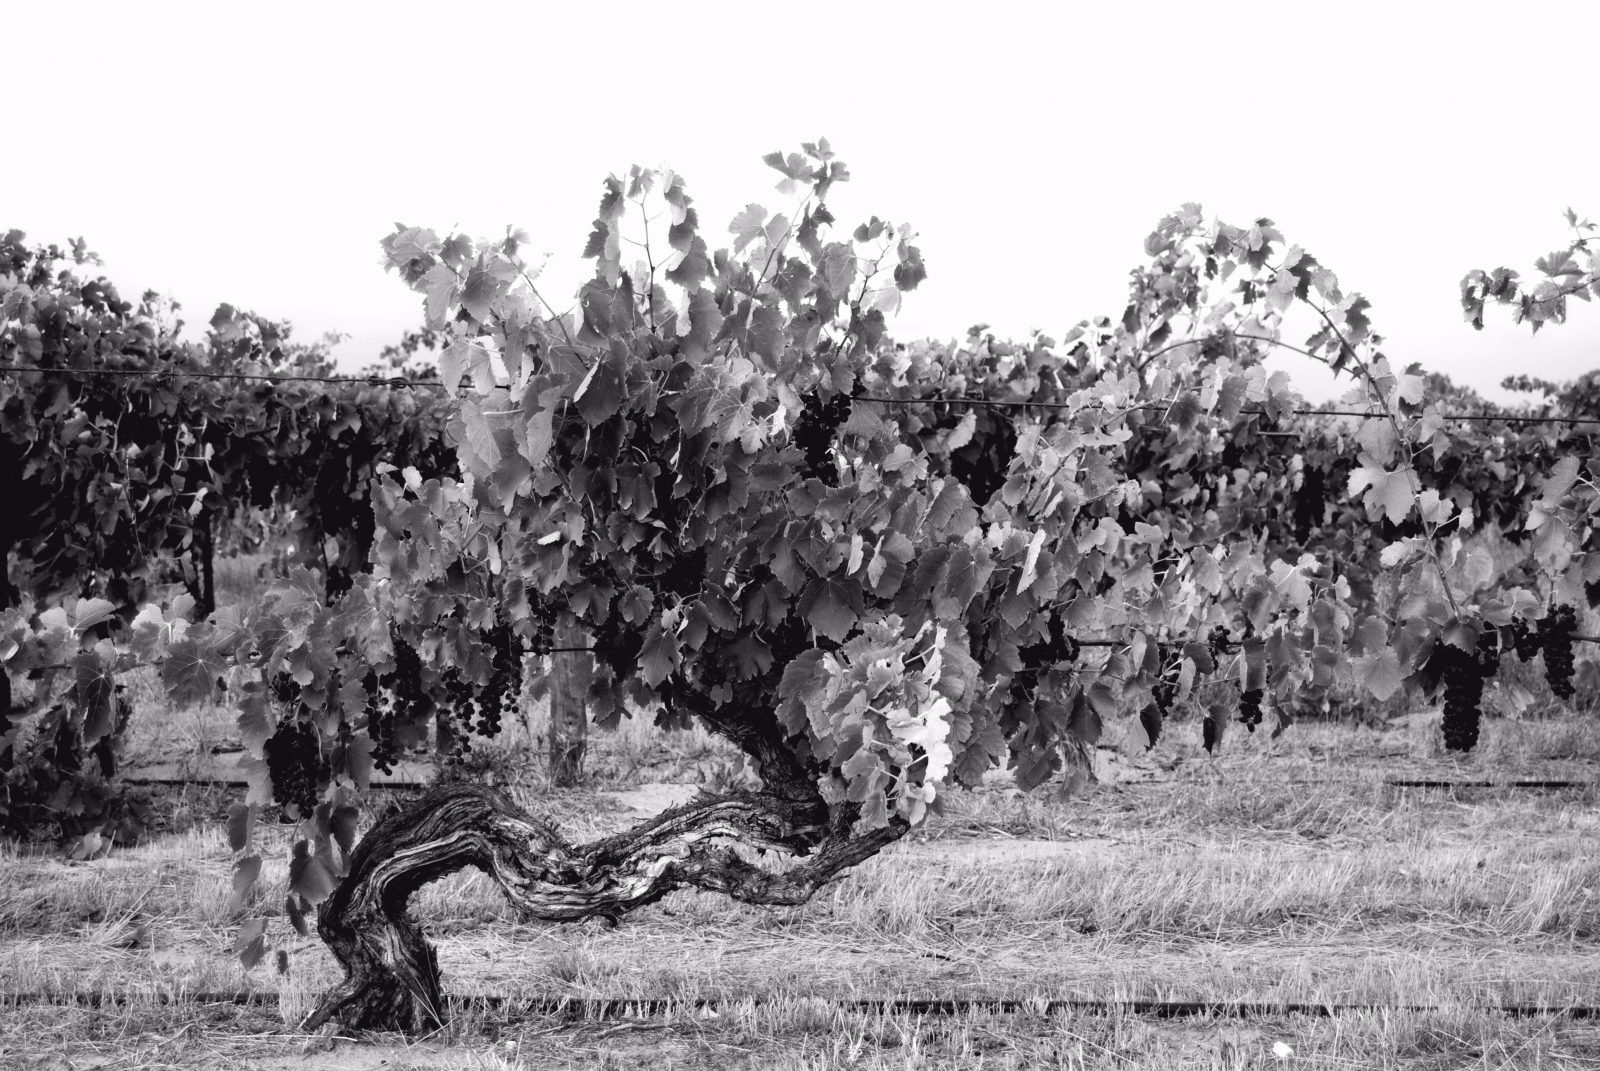 These vines have seen out 2 world wars and the great depression.